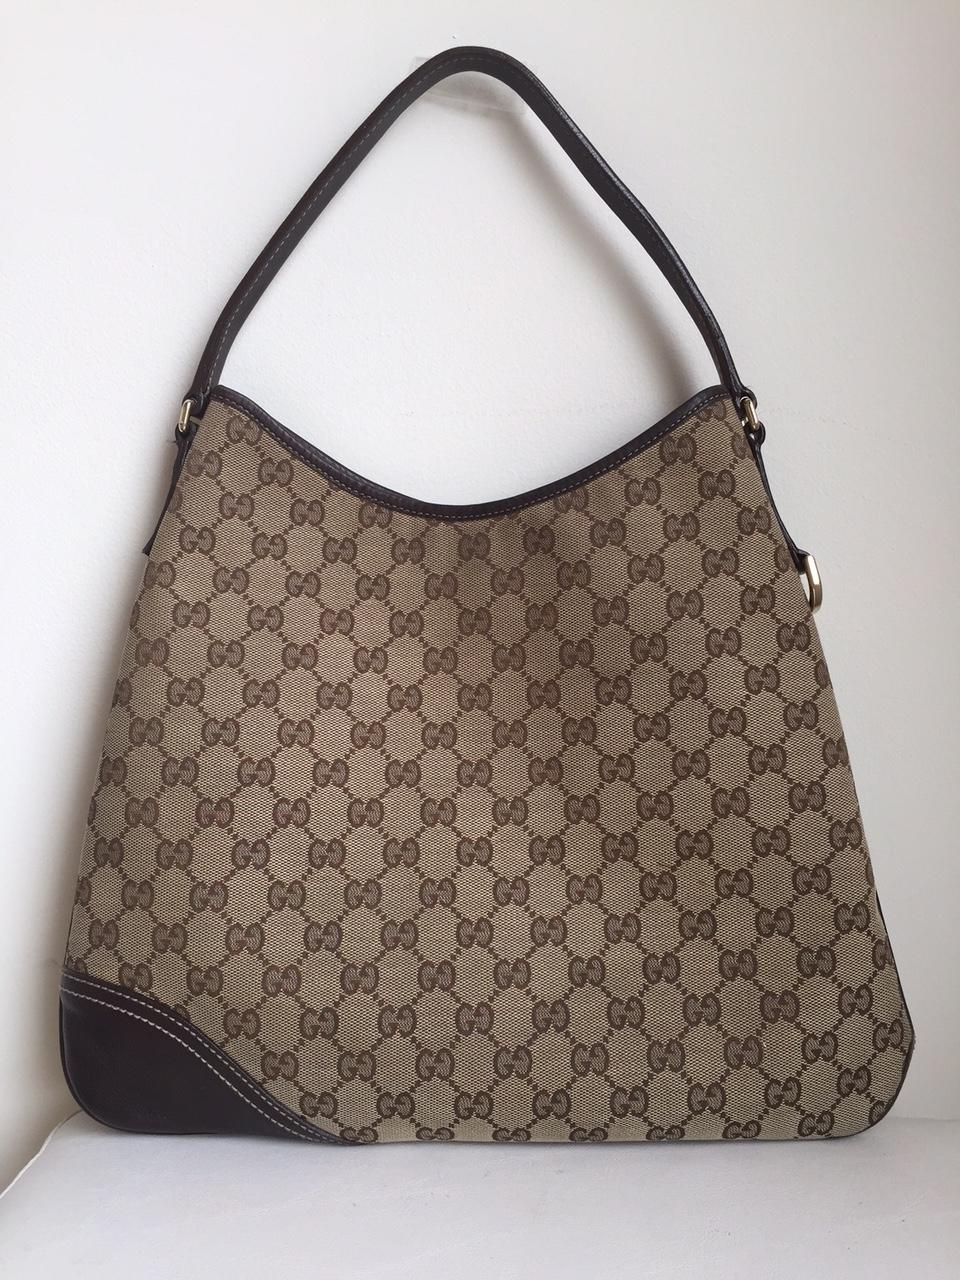 Gucci Monogram New Britt Medium Hobo Bag on Sale, 43% Off | Hobos ...